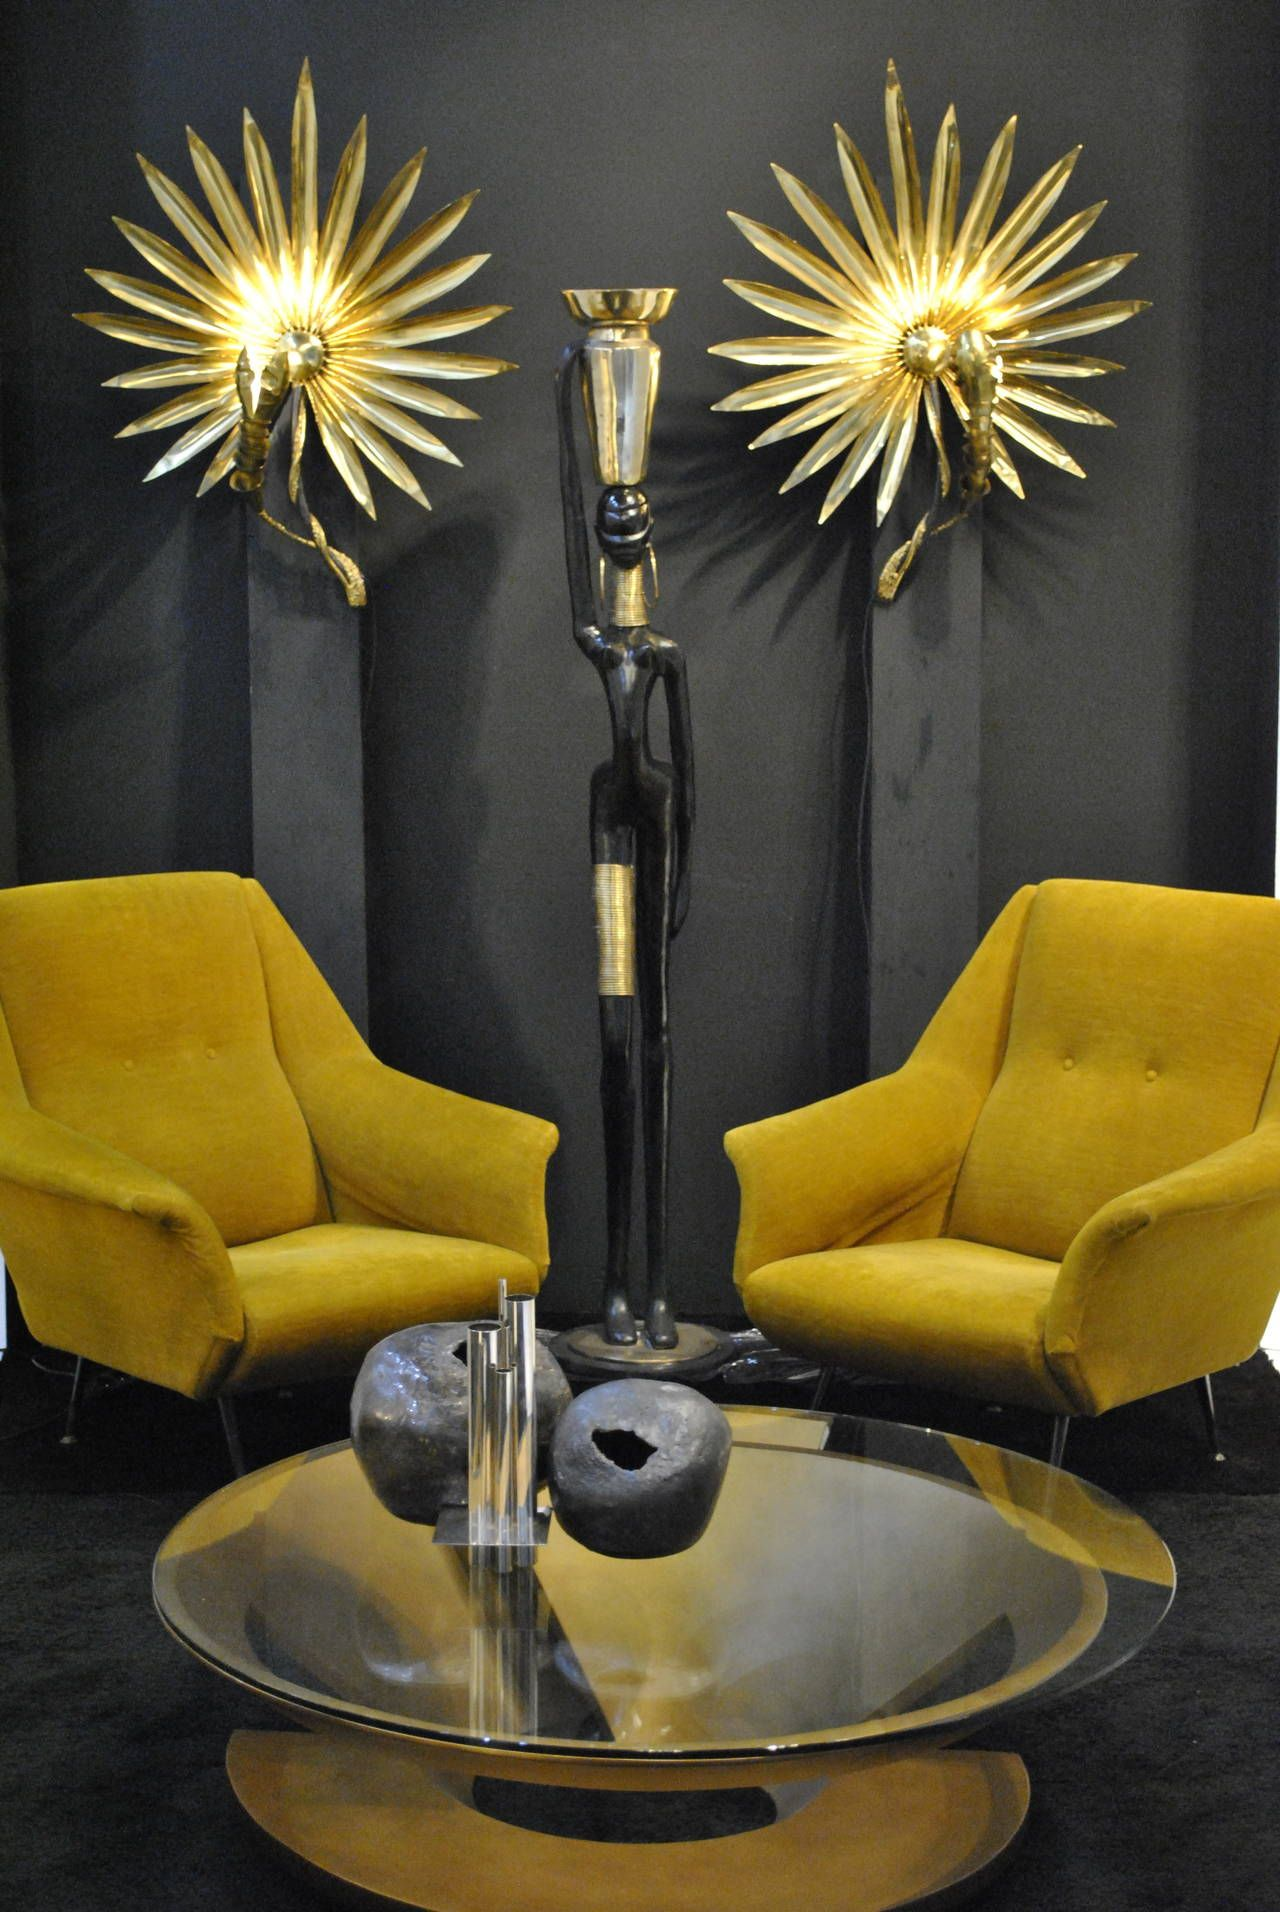 Brass Sunburst Sconces by Henri Fernandez for Jacques Duval-Brasseur | 1980